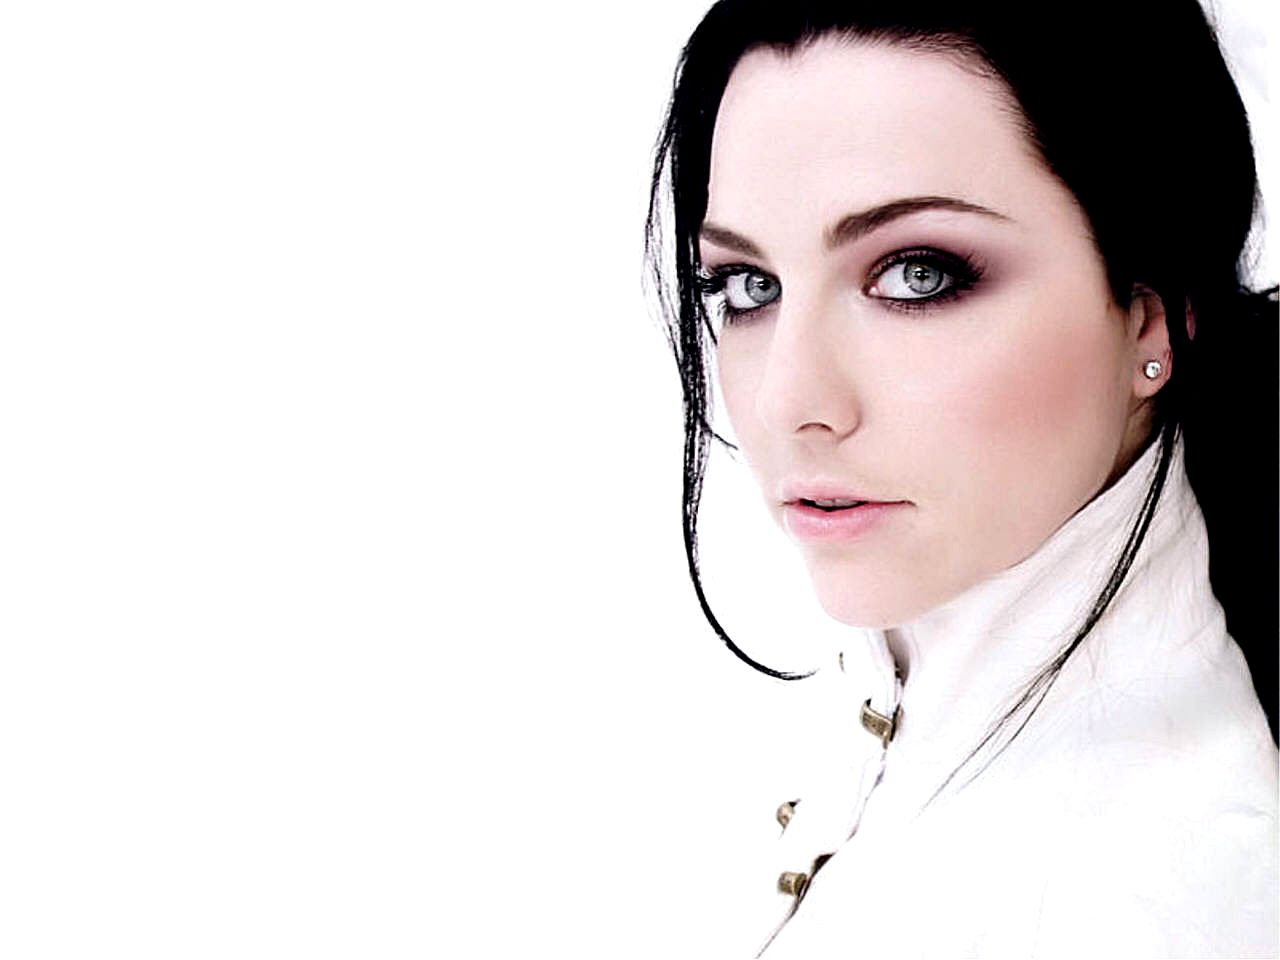 Amy Lee Res: 1280x960 / Size:60kb. Views: 17230